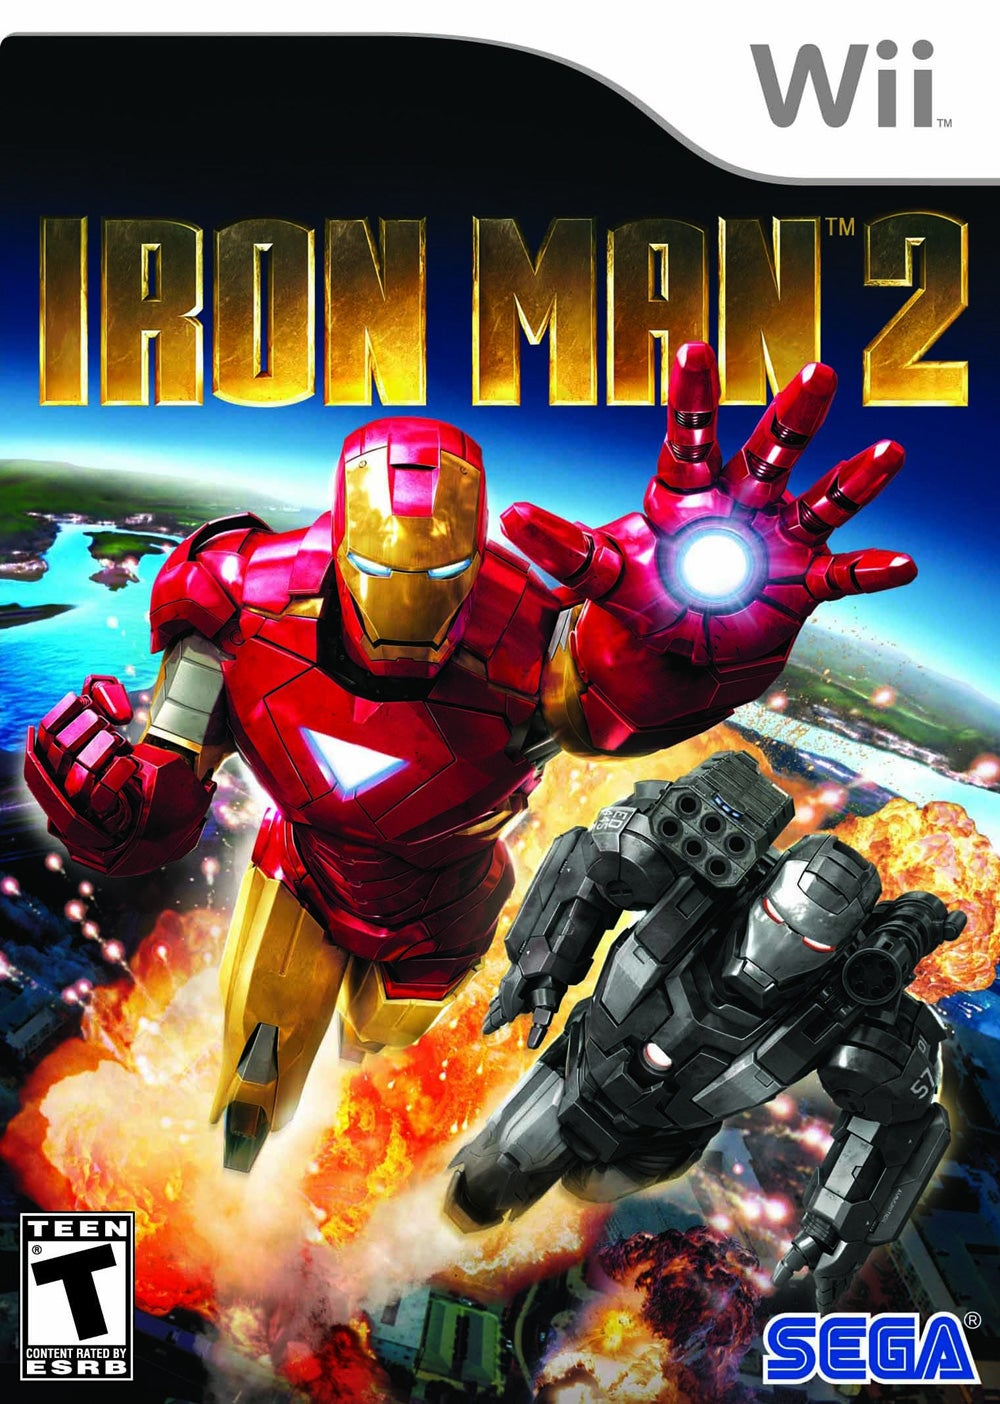 Iron Man 2 Review - IGN